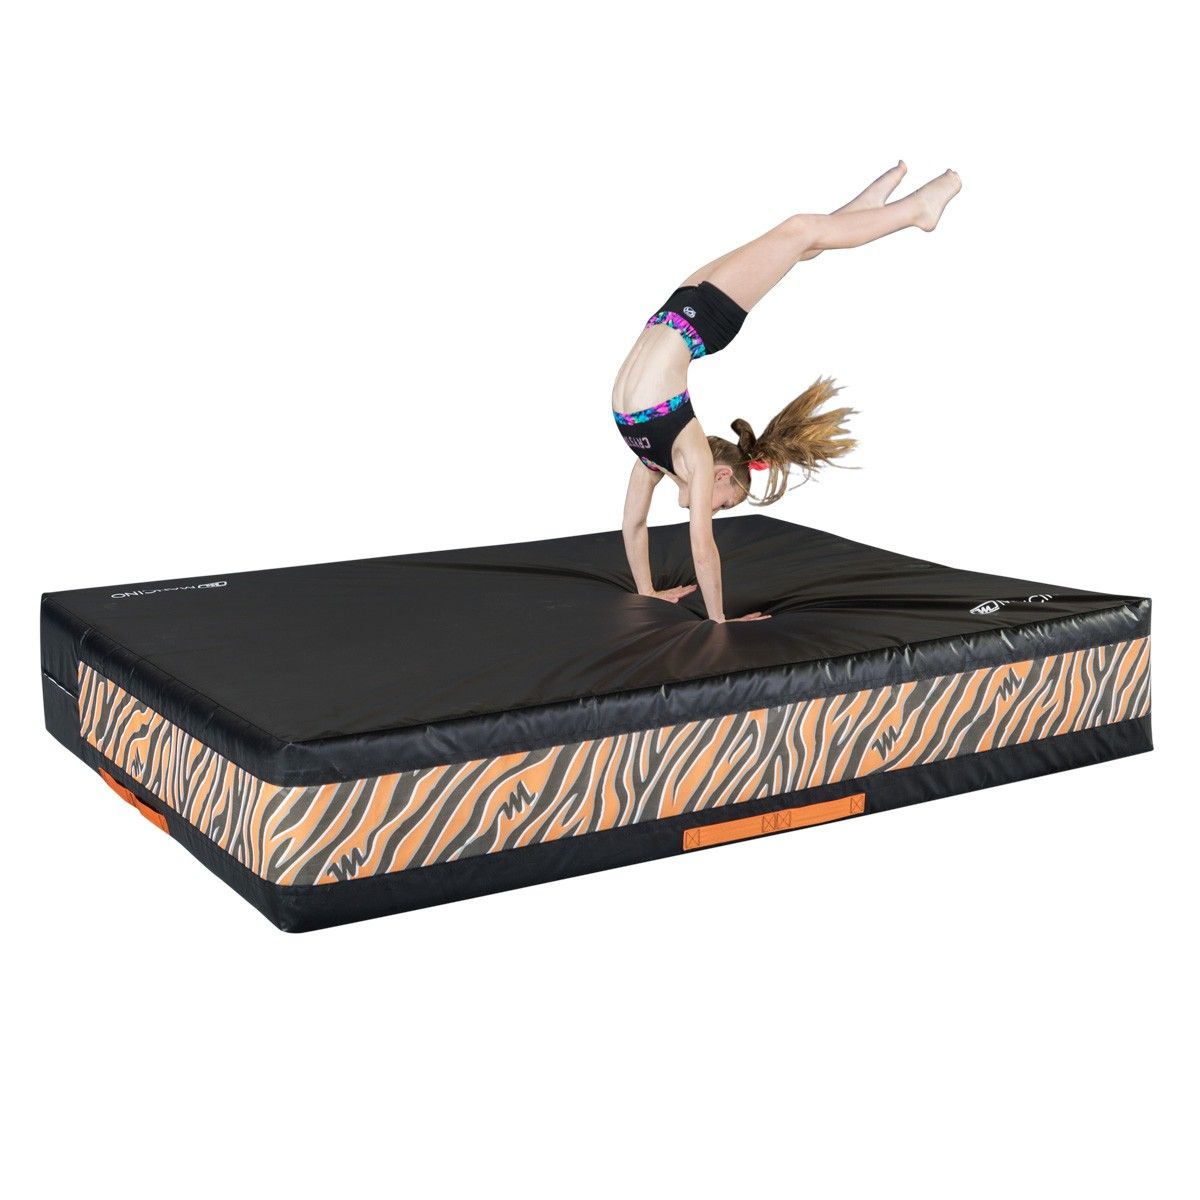 Need A Softer Landing Surface For Your Cheerleaders Mancino Softy Mats Are Perfect For Adding Th Gymnastics Equipment For Home Gymnastics Equipment Cheer Mats